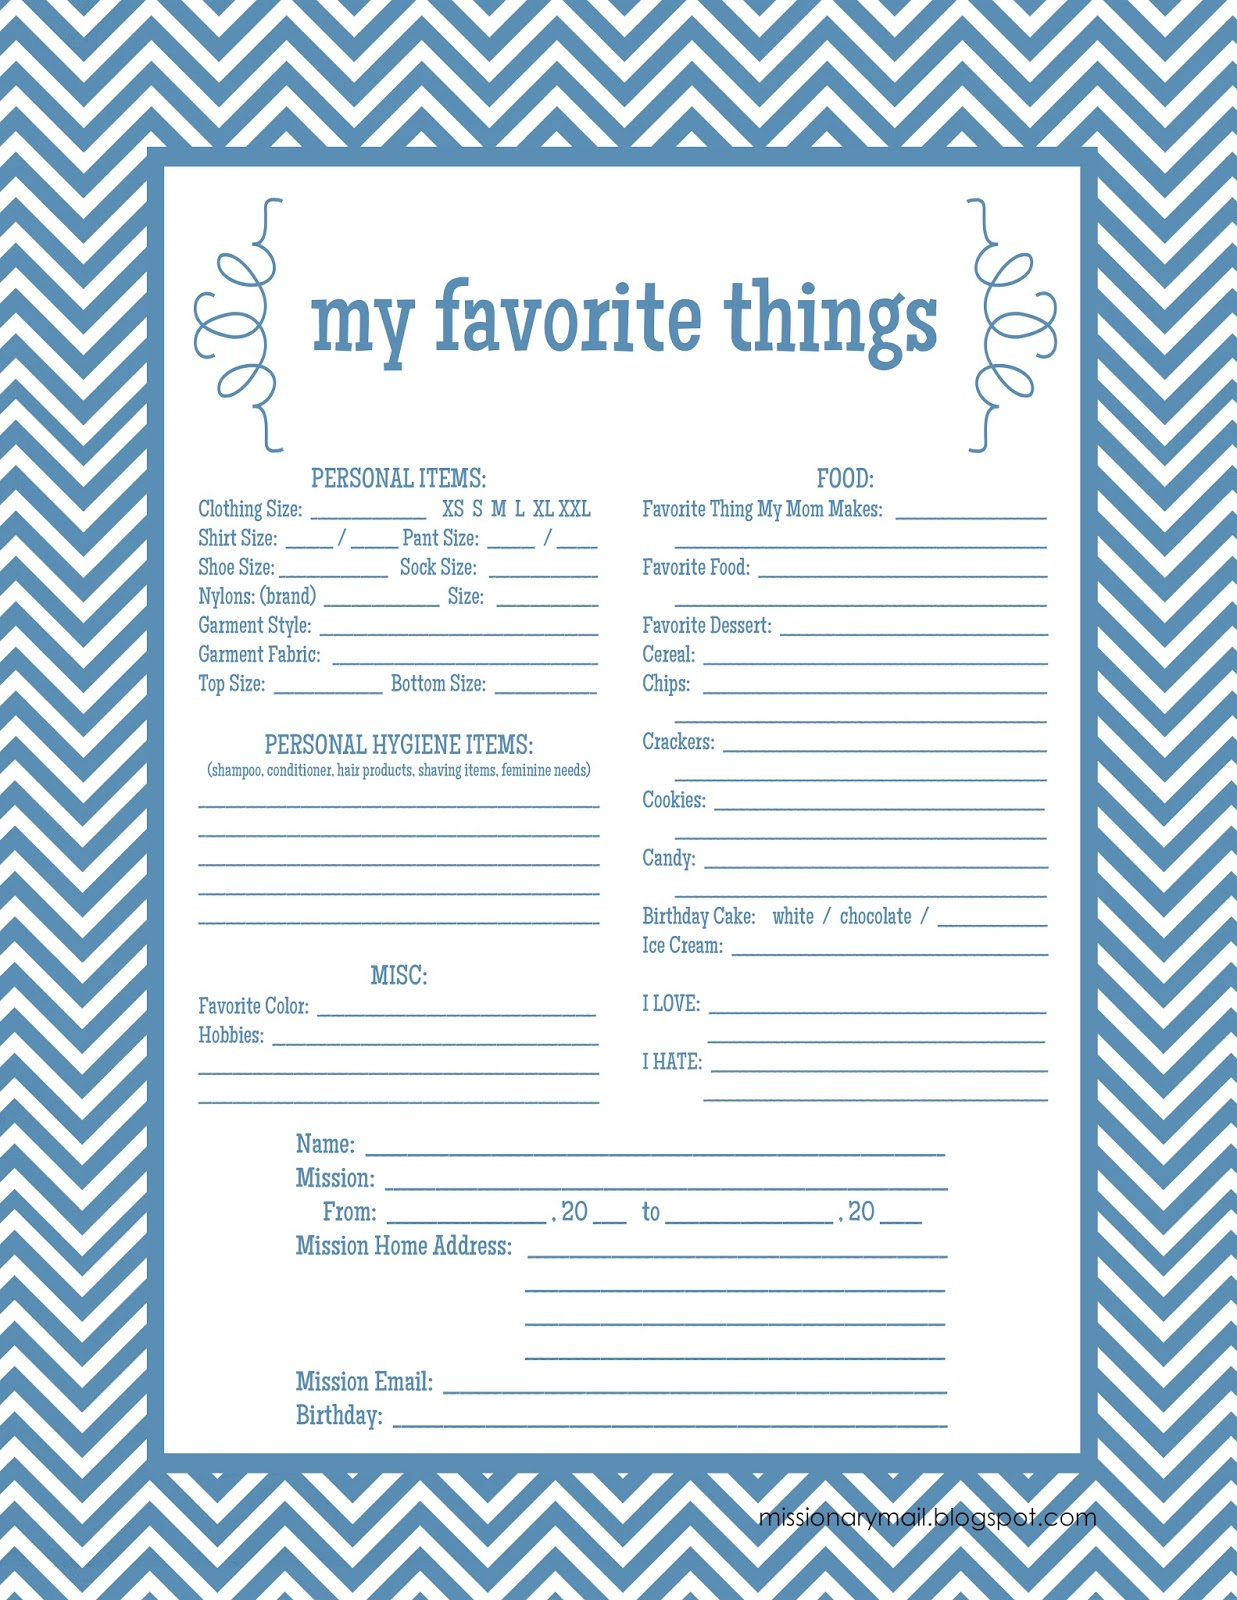 Missionary Mail My Favorite Things Printable